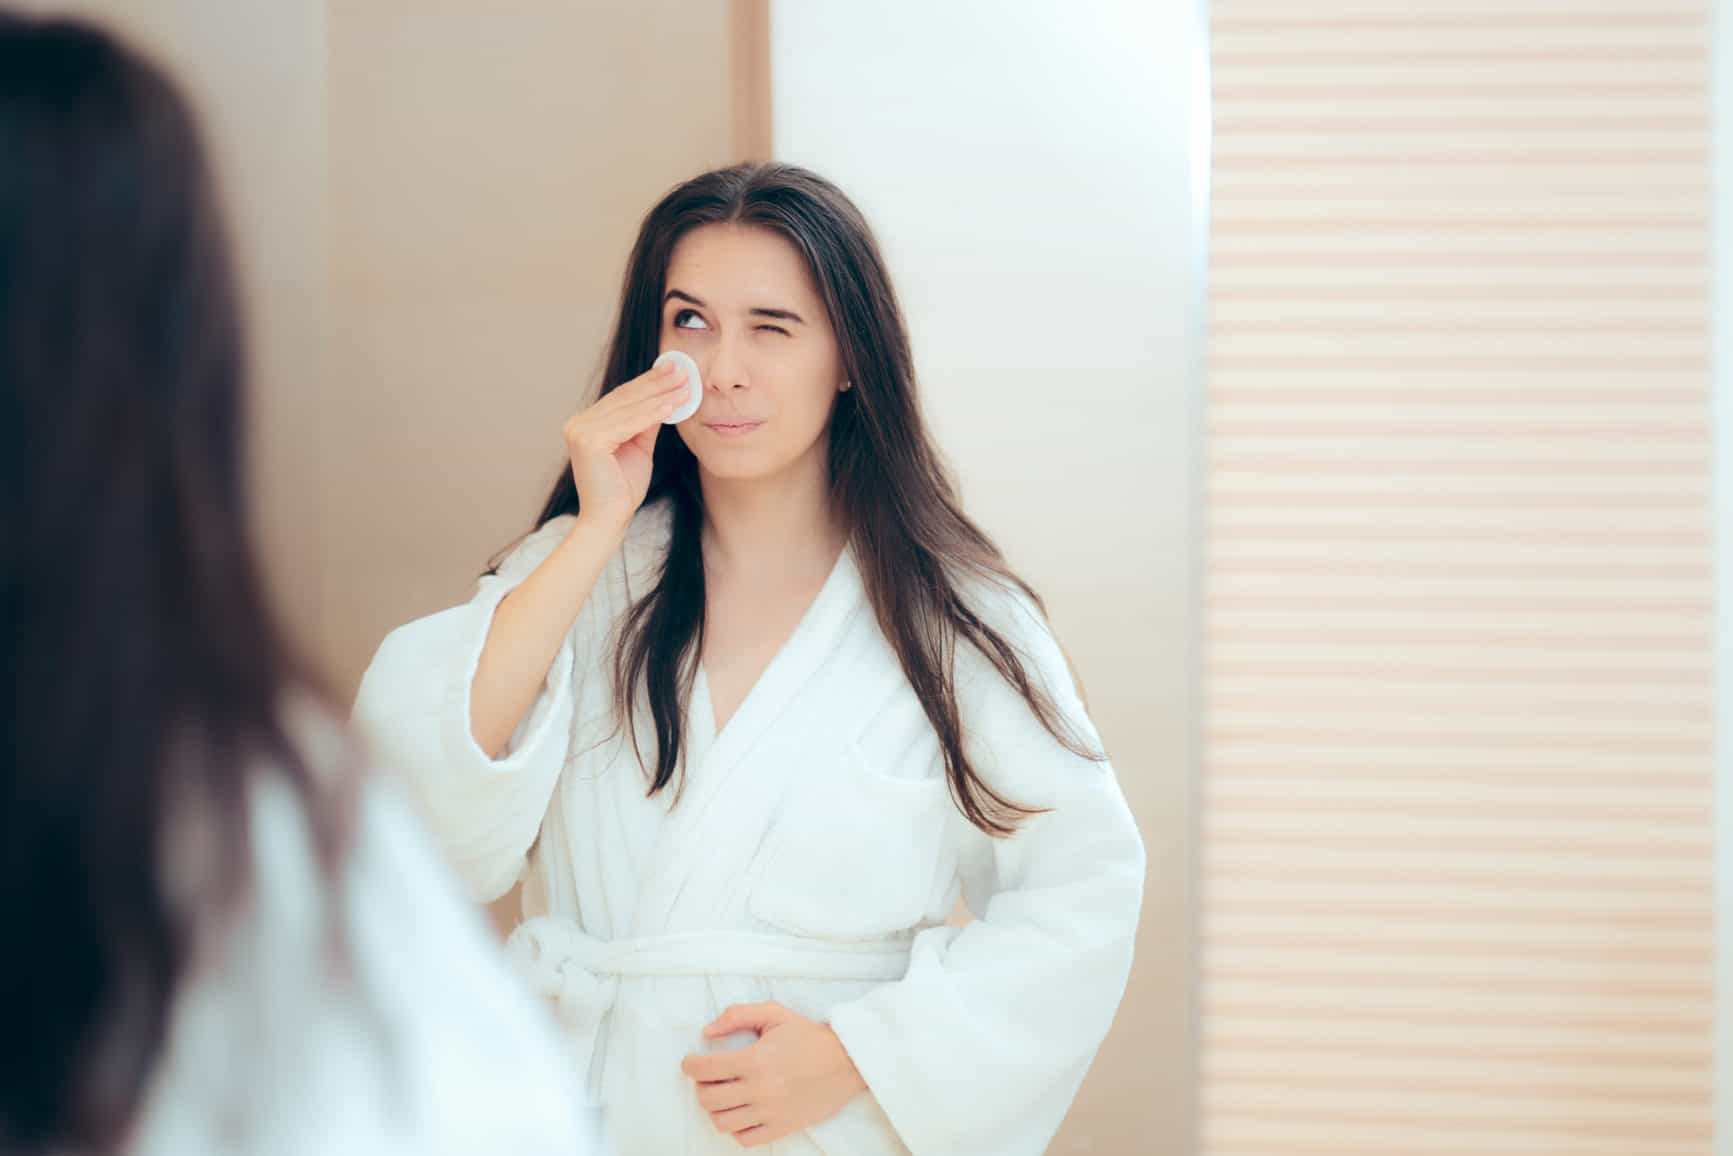 4 Makeup Removal Mistakes You Should Stop Doing and Do This Instead